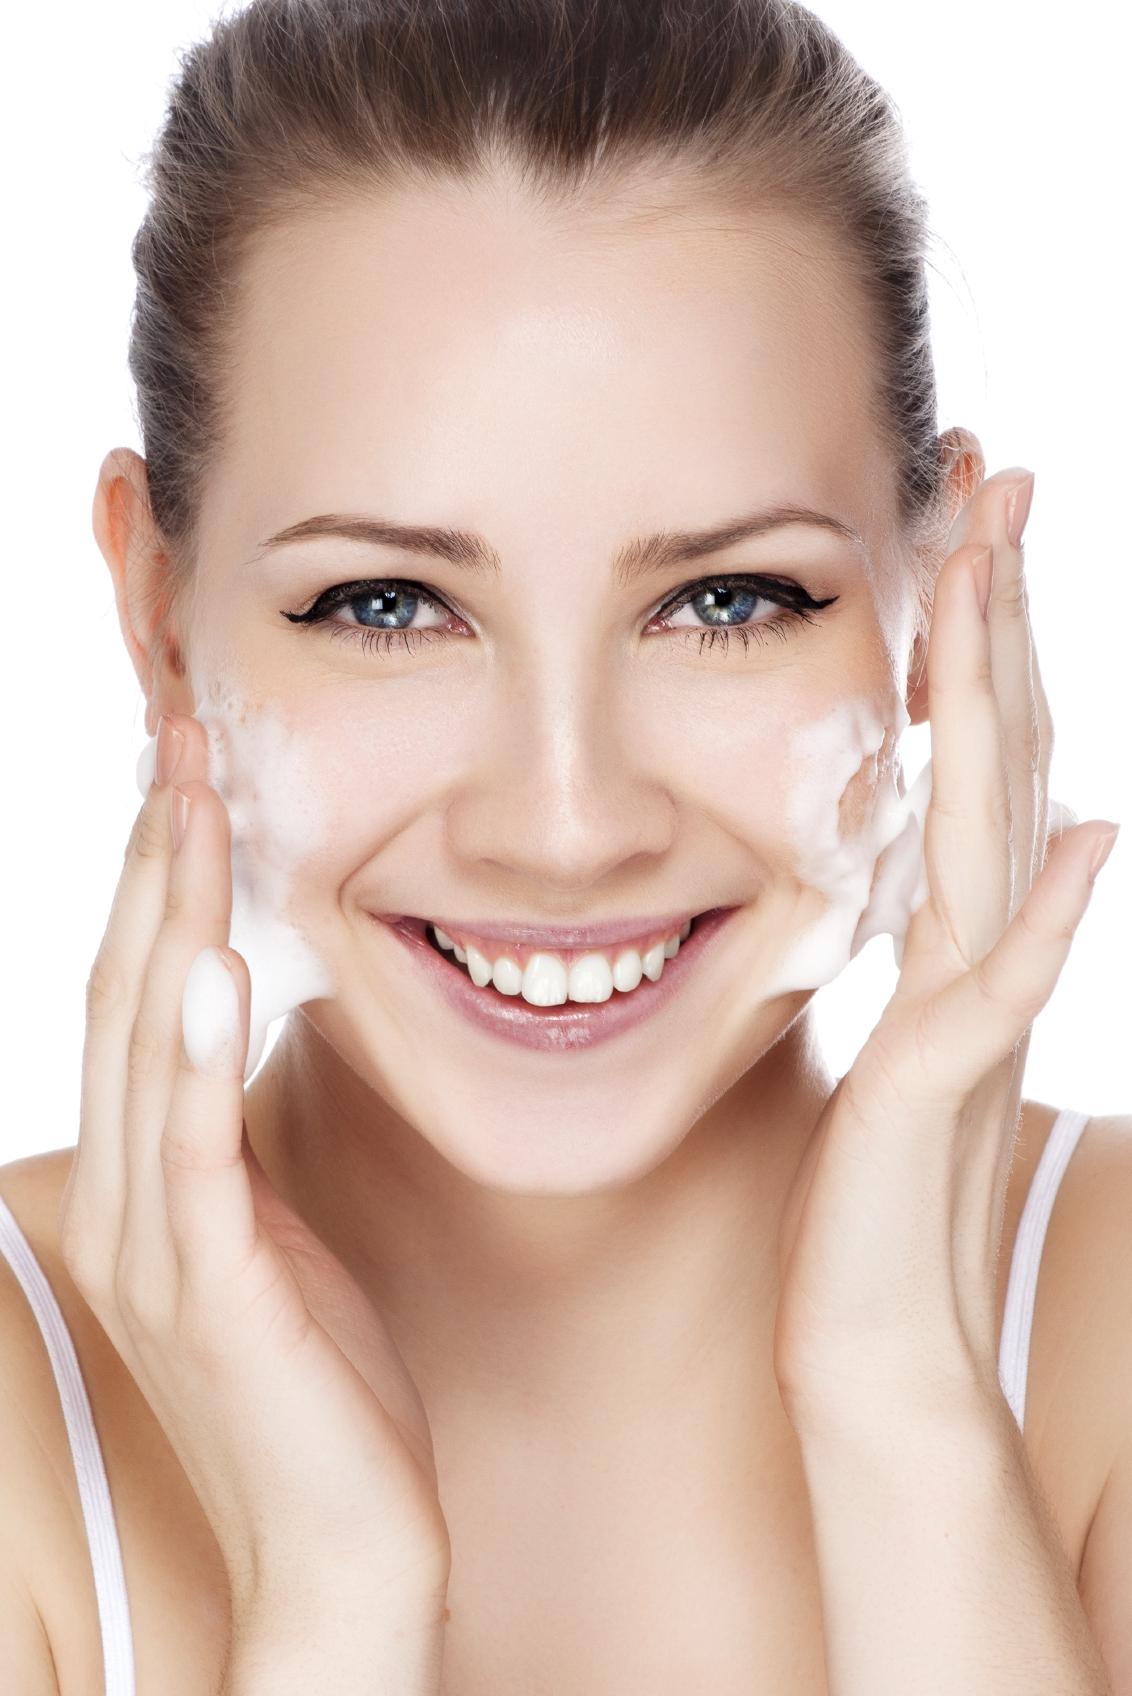 Four Best Skin Care Practices with Luxurious In-Home ...